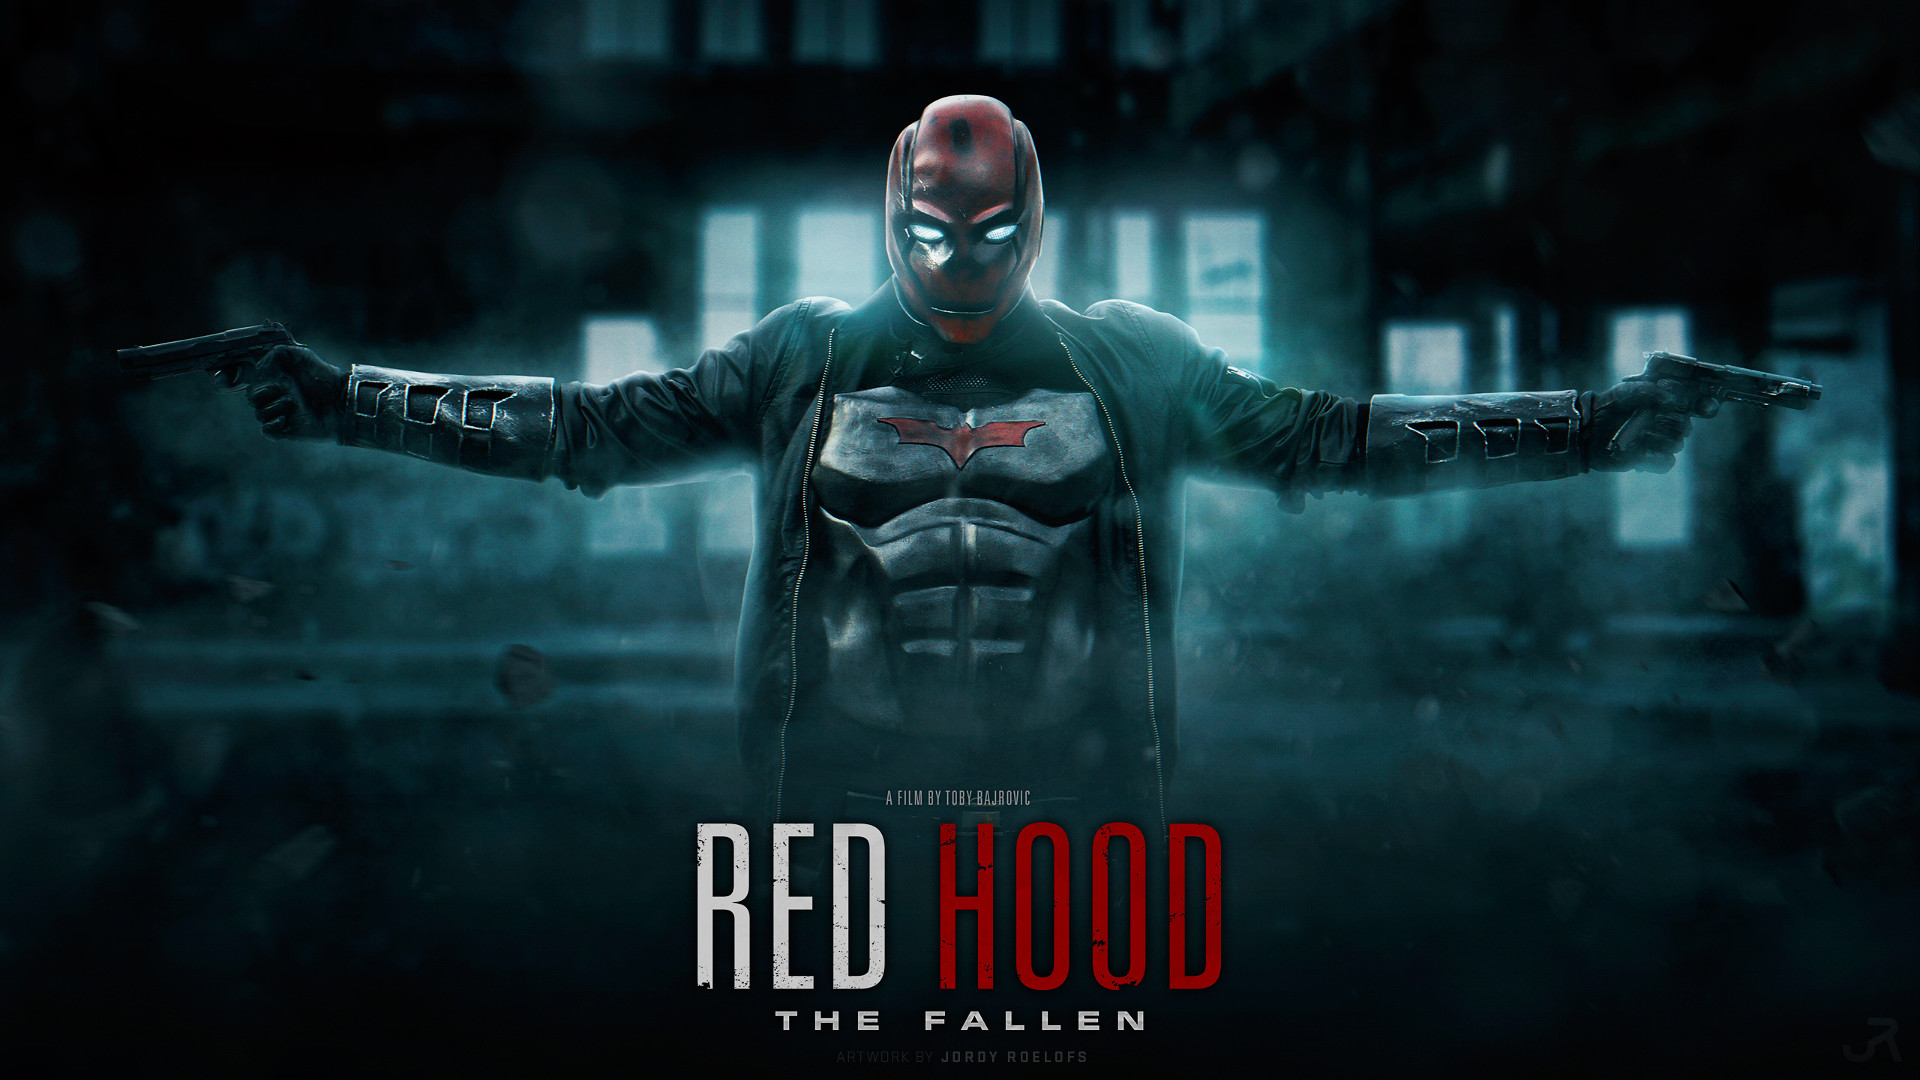 … RED HOOD THE FALLEN – Wallpaper 1080P by visuasys